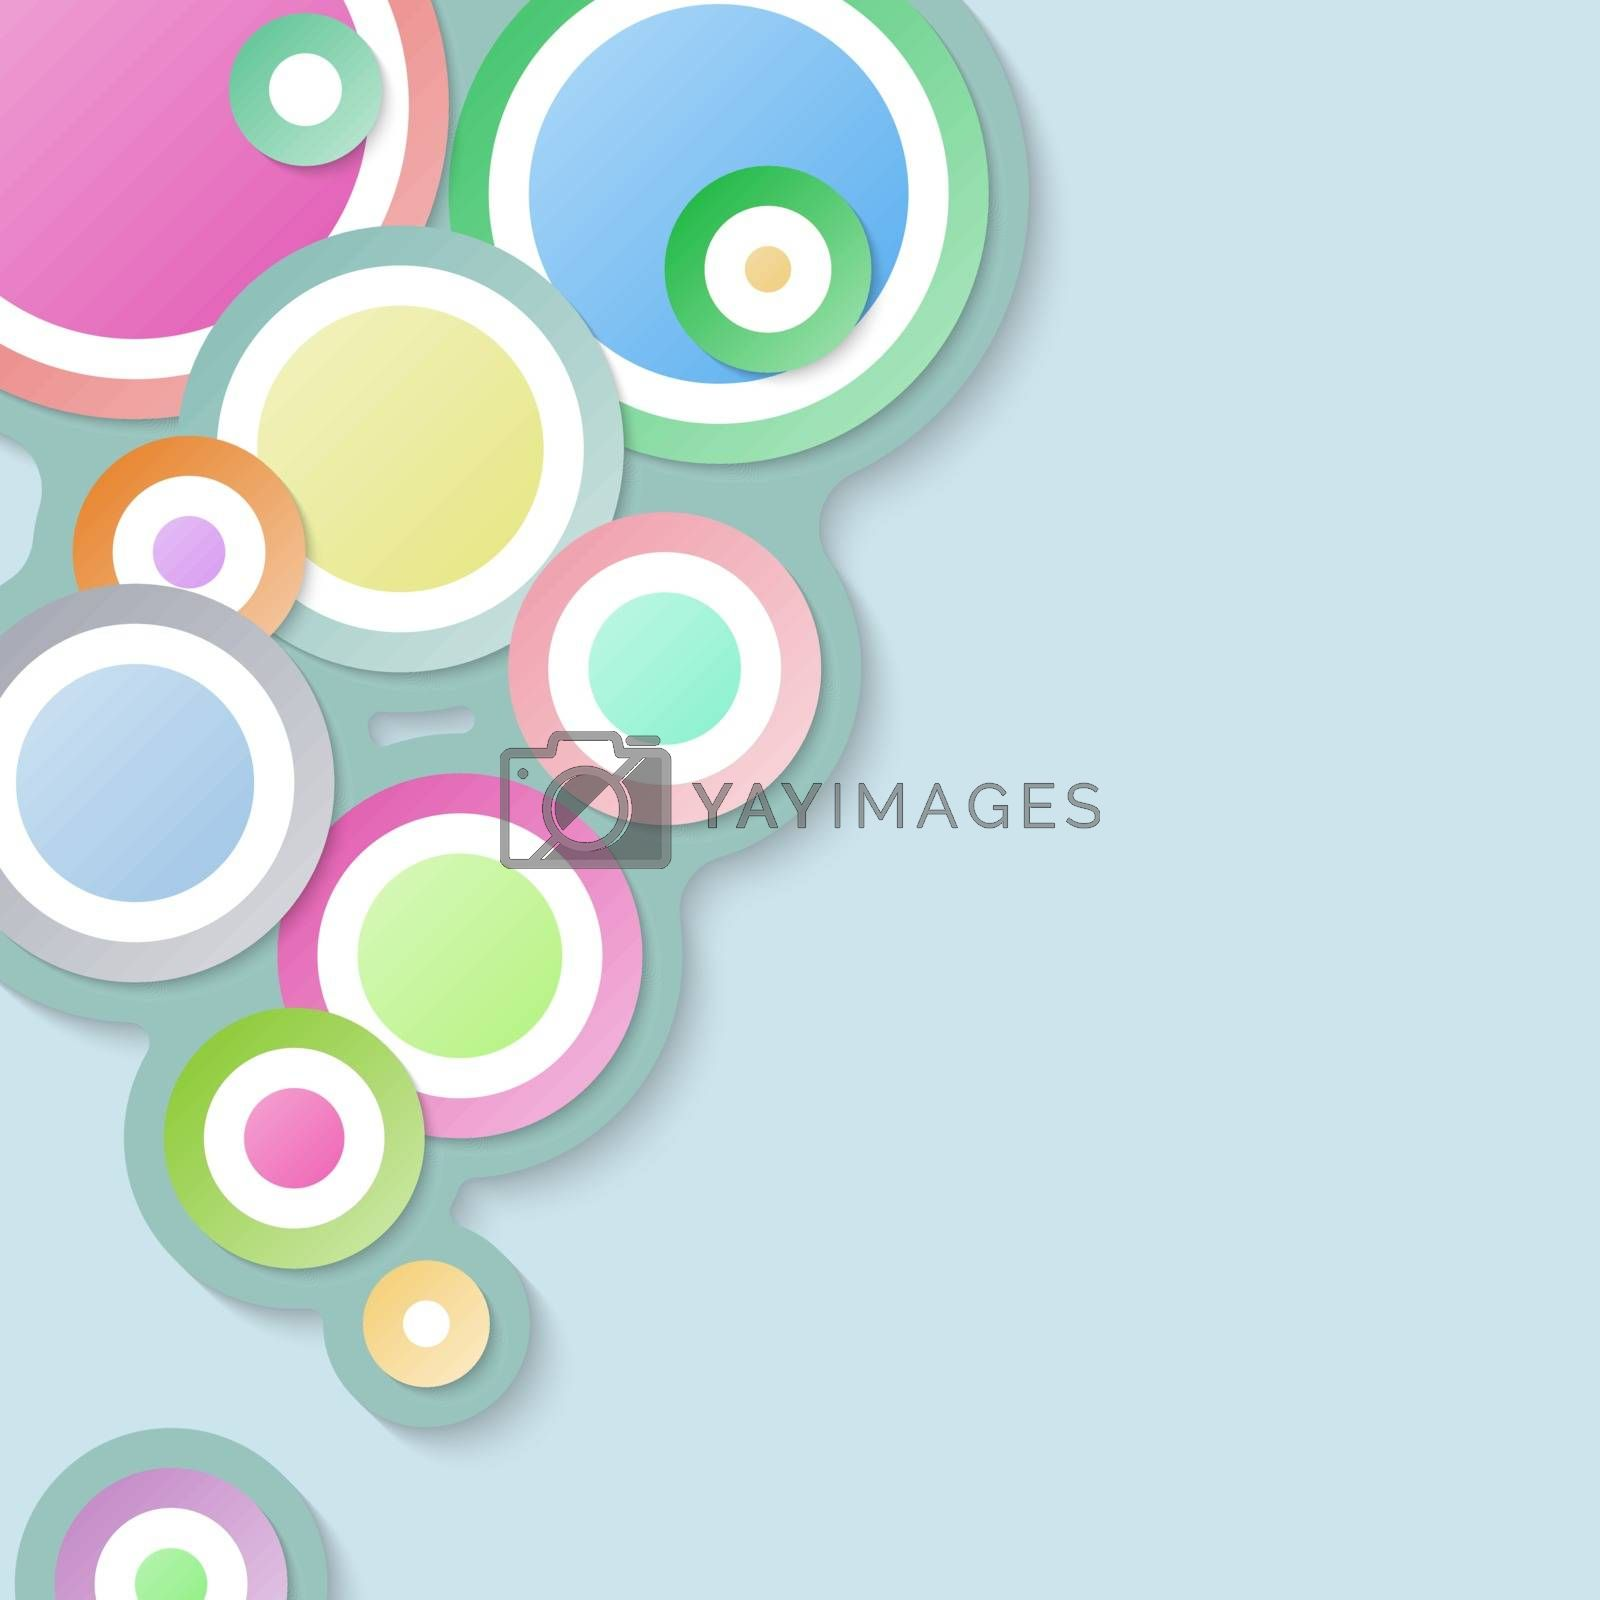 Circle abstract background with pastel color.